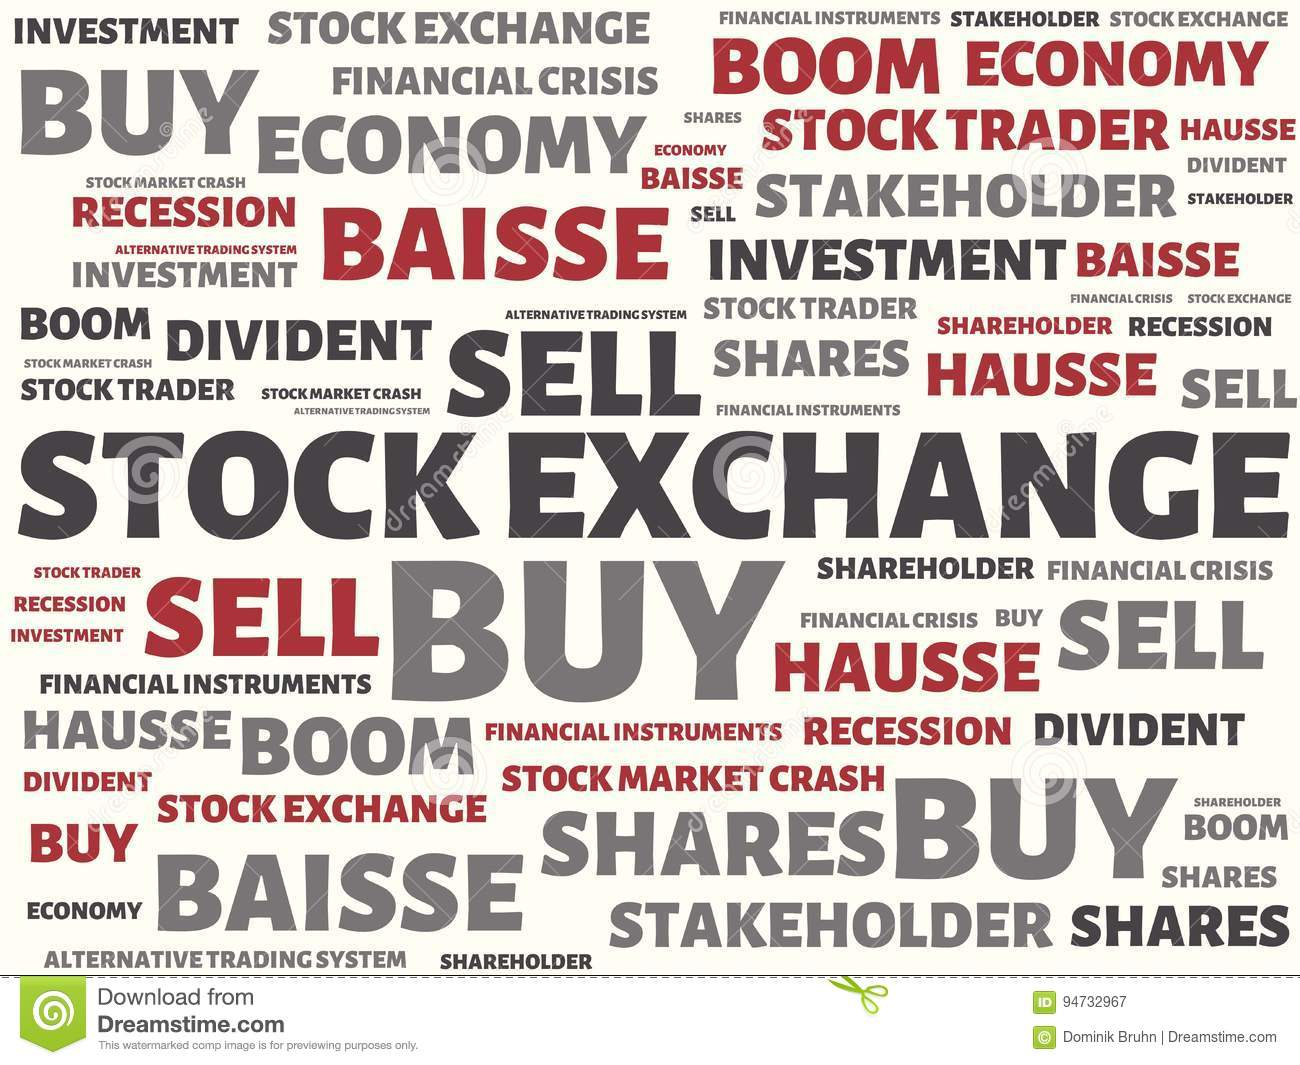 Stock Exchange Image With Wordsociated With The Topic Stock Exchange Word Cloud Cube Letter Image Il Ration